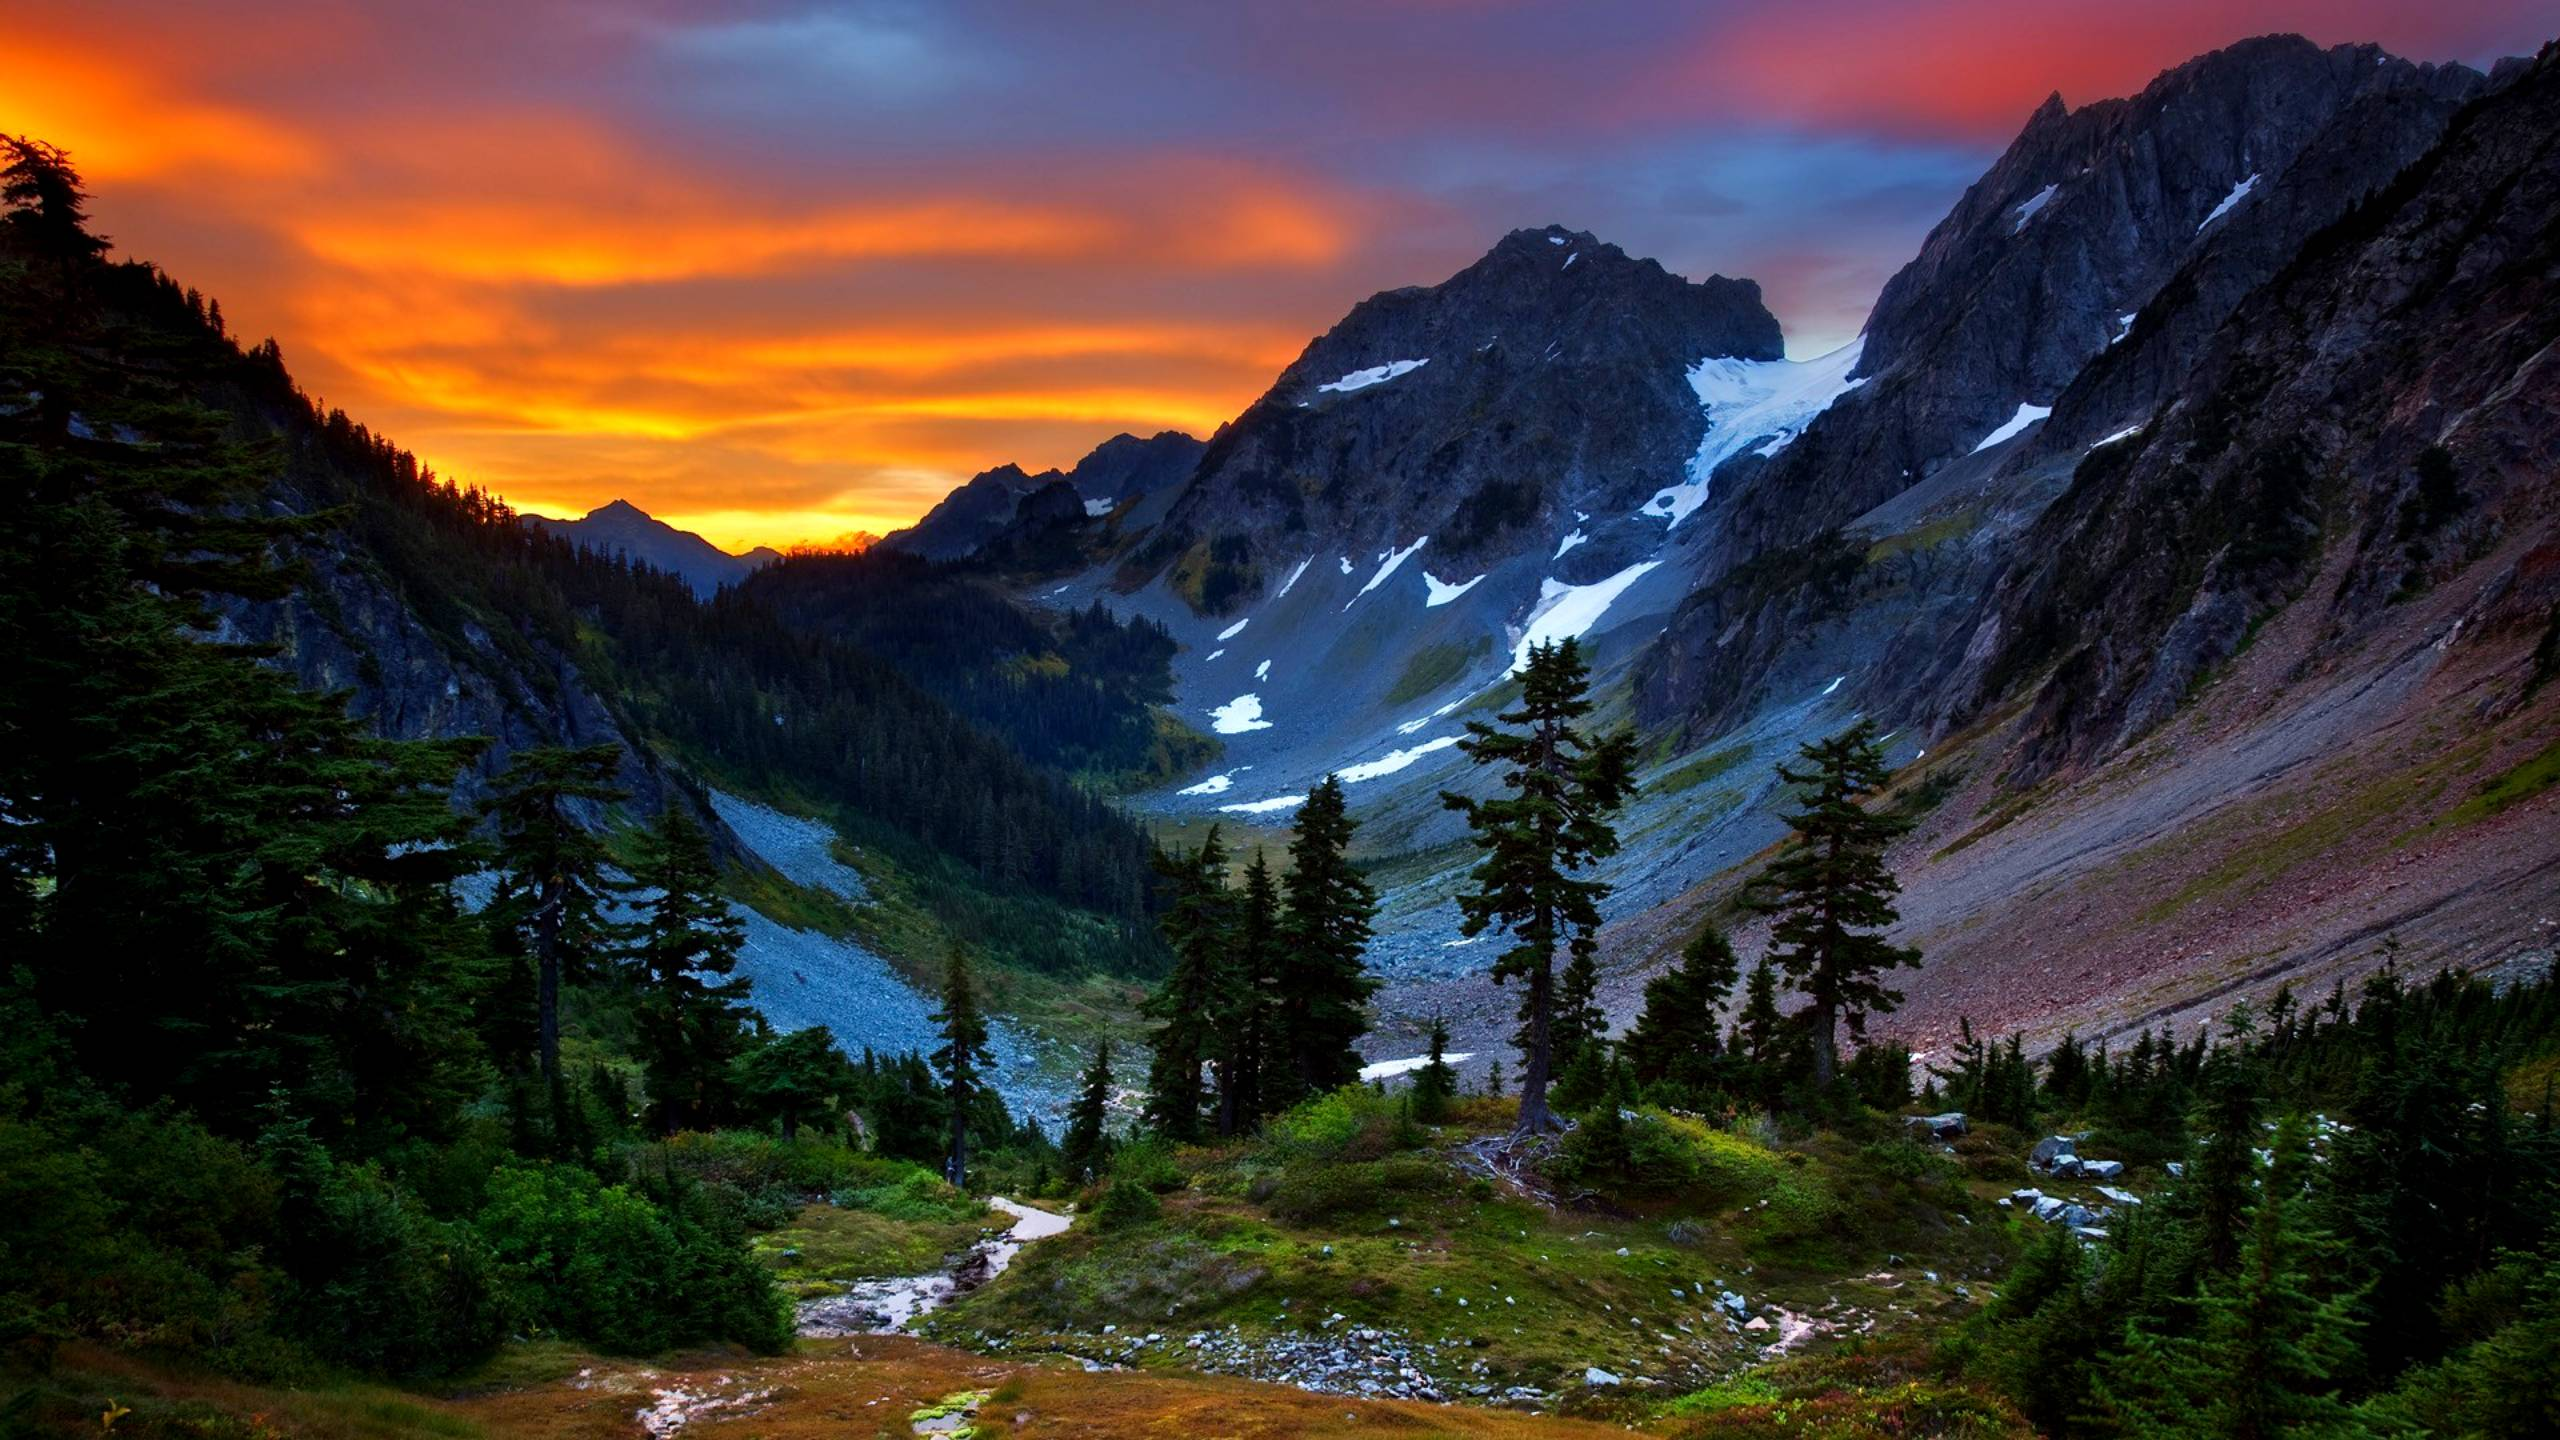 mountain screensavers and wallpaper backgrounds - photo #9